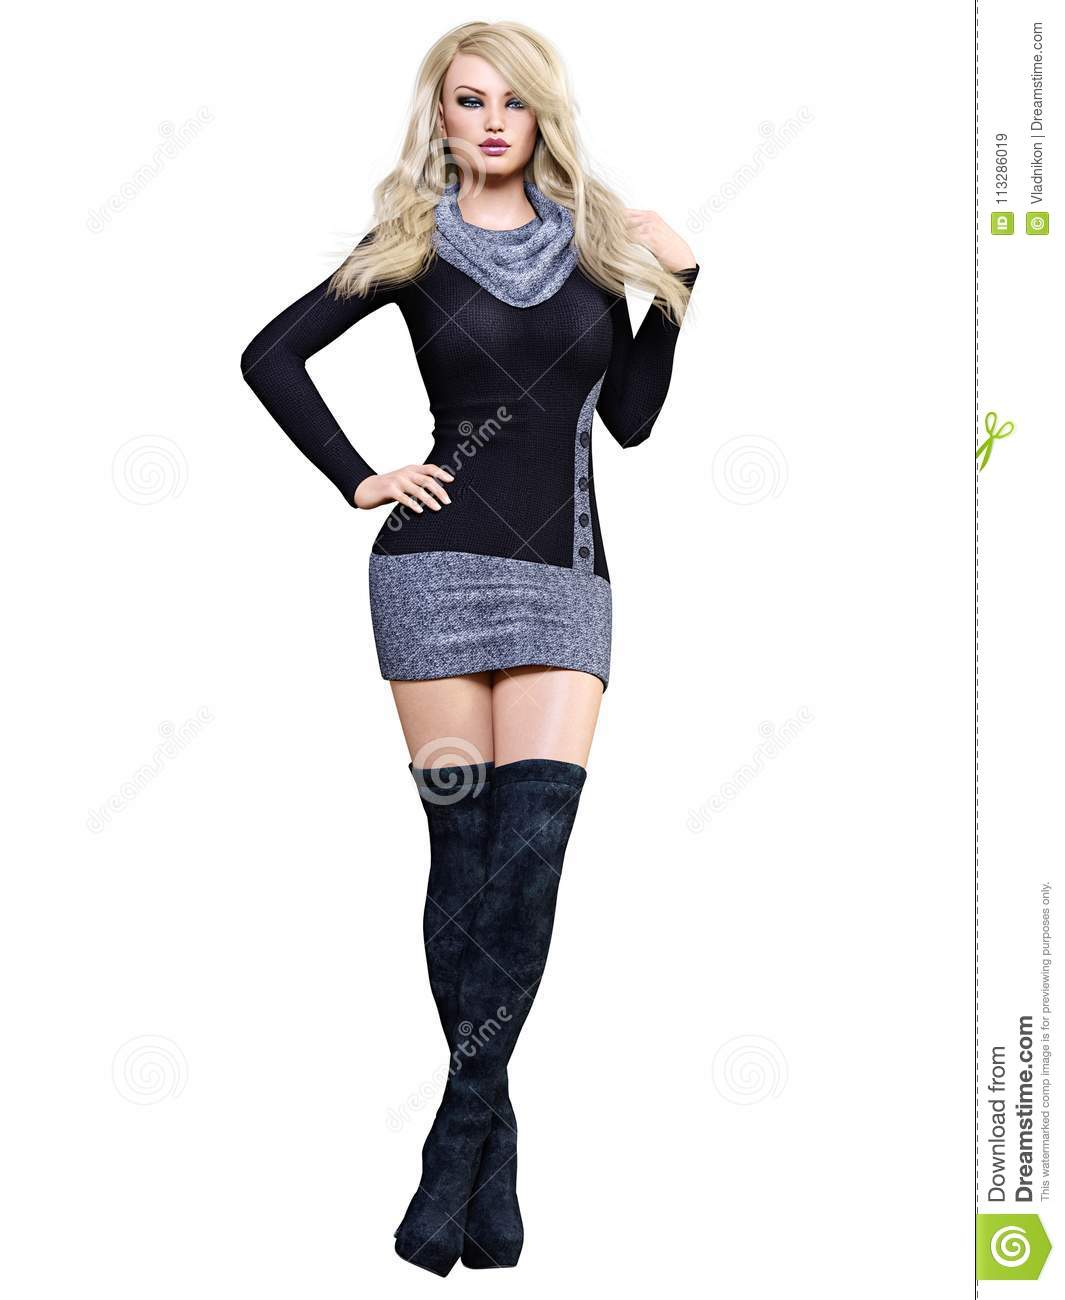 a35305eaf8b 3D beautiful blonde short dress and long boots.Spring-autumn  collection.Bright makeup.Woman studio photography.High heel.Conceptual  fashion art.